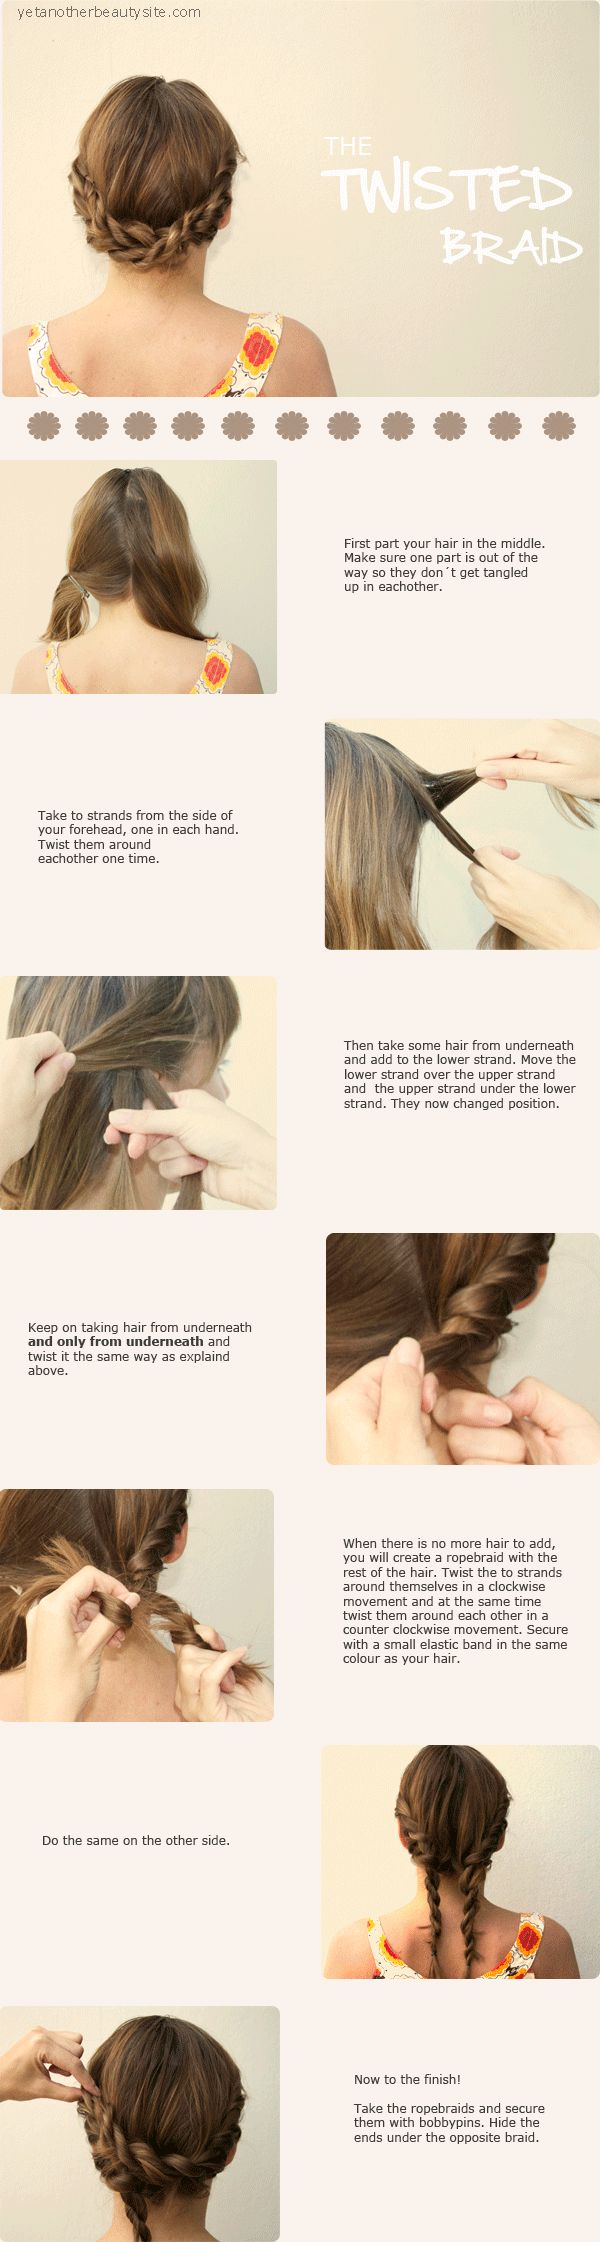 Yet another beauty site #hair #hair tutorial